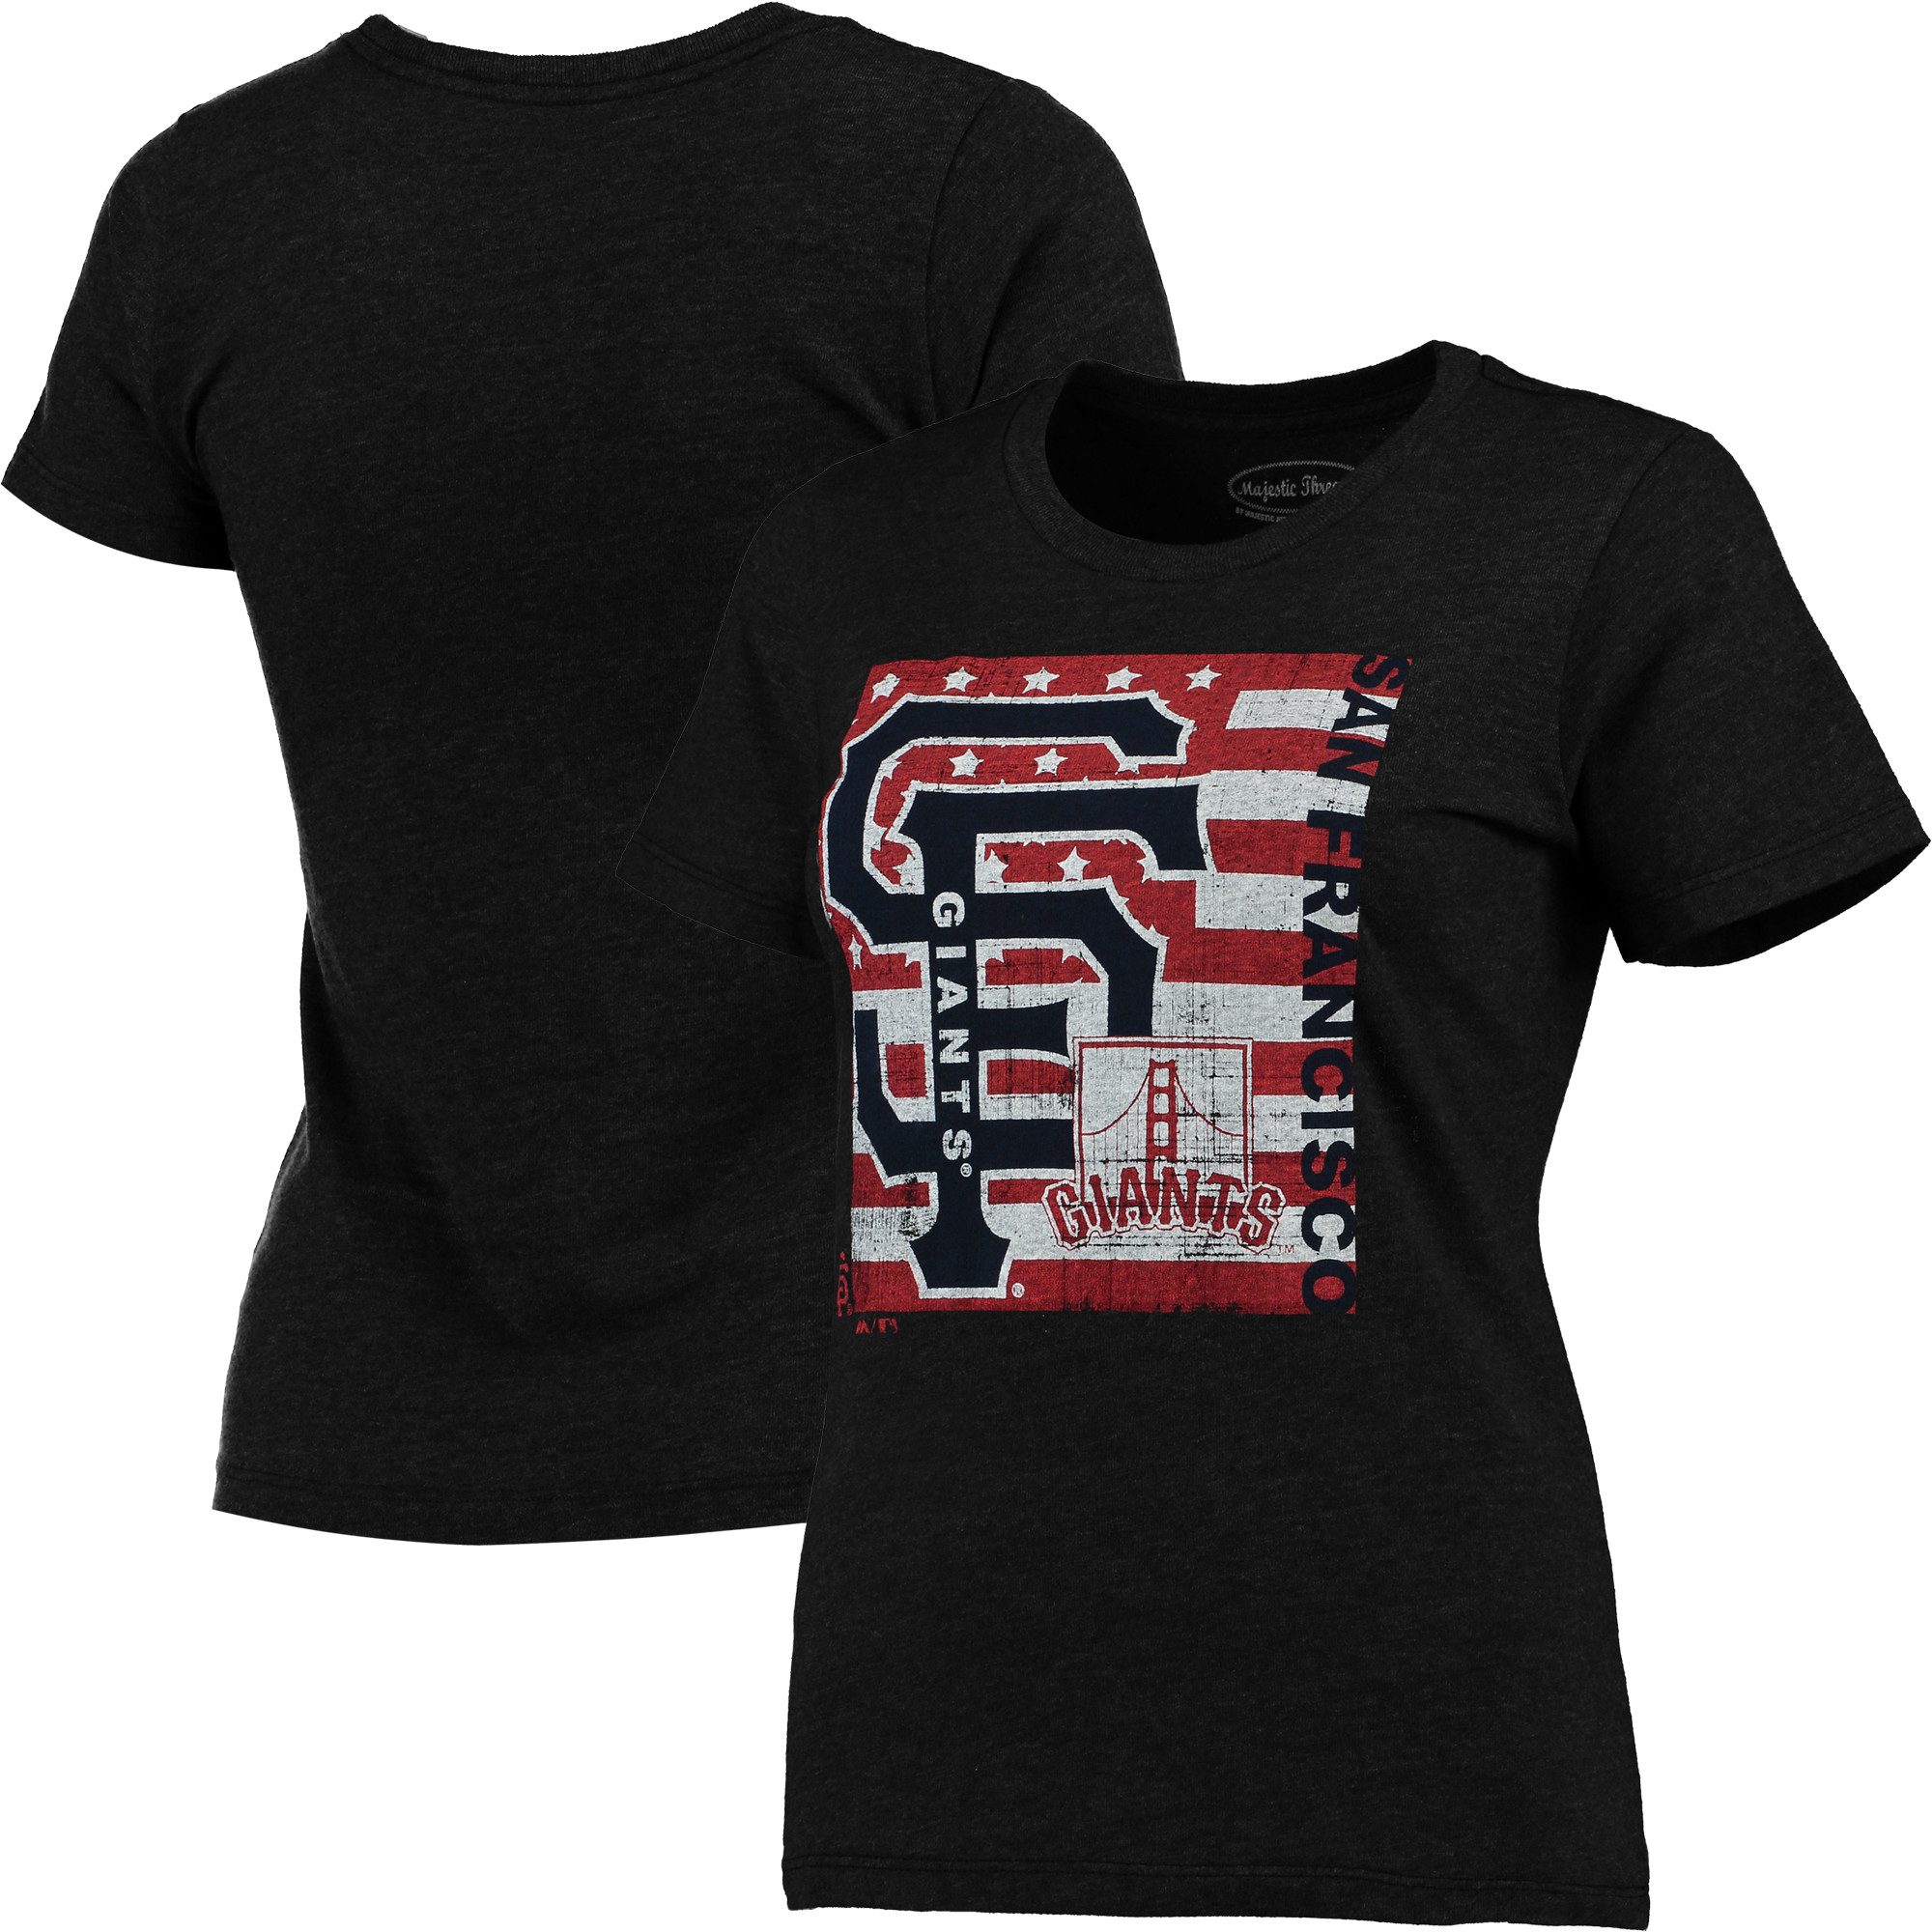 San Francisco Giants Majestic Threads Women's Stars & Stripes Flag T-Shirt - Black